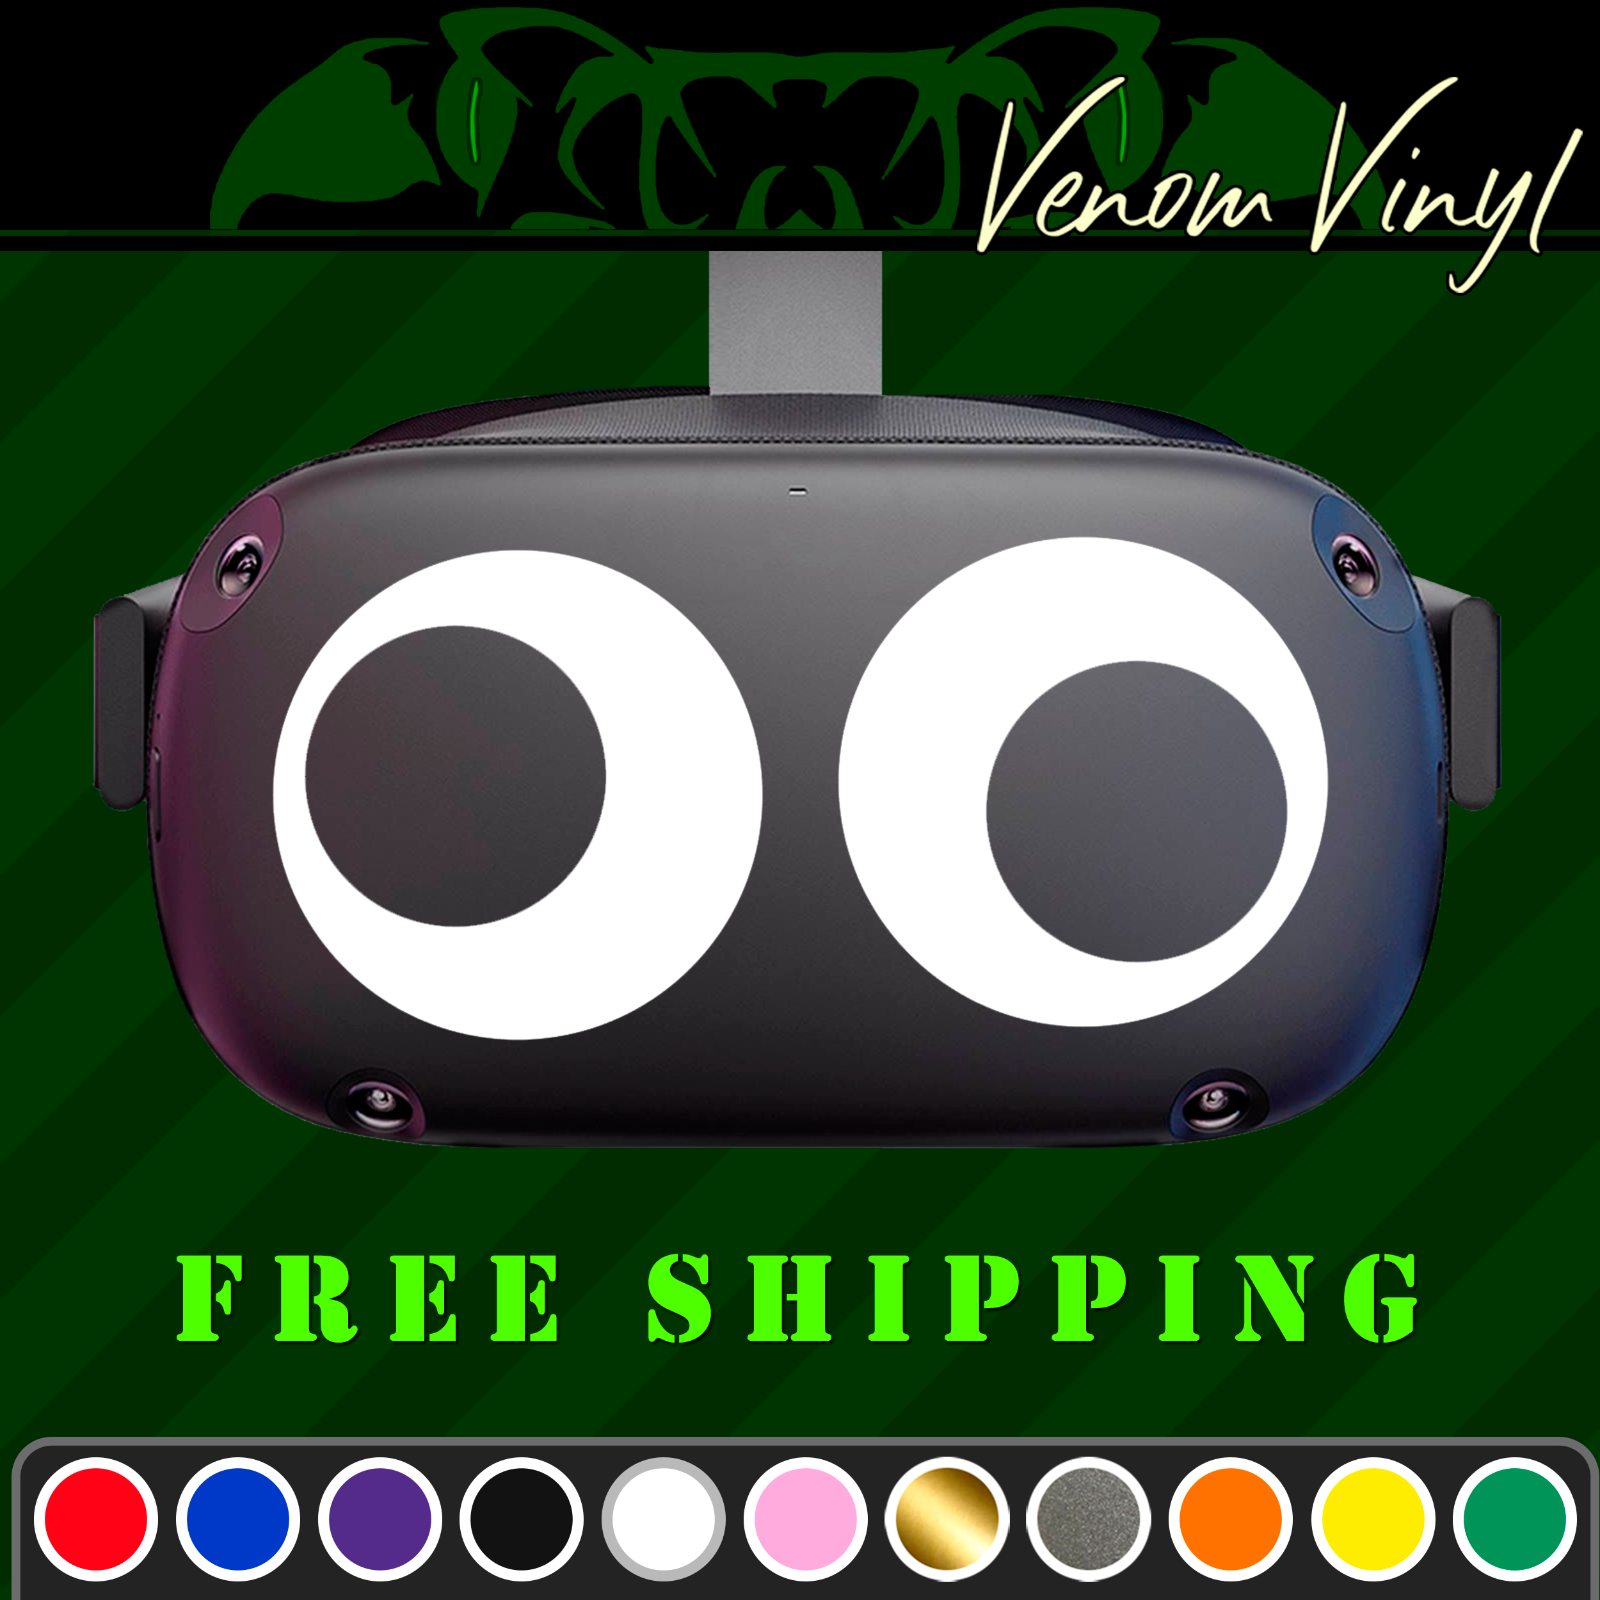 Googly Crazy Eyes Funny Vinyl Decal Fits Oculus Quest Rift Psvr Vr Headsets Ebay In 2020 Funny Vinyl Decals Vinyl Decals Vinyl